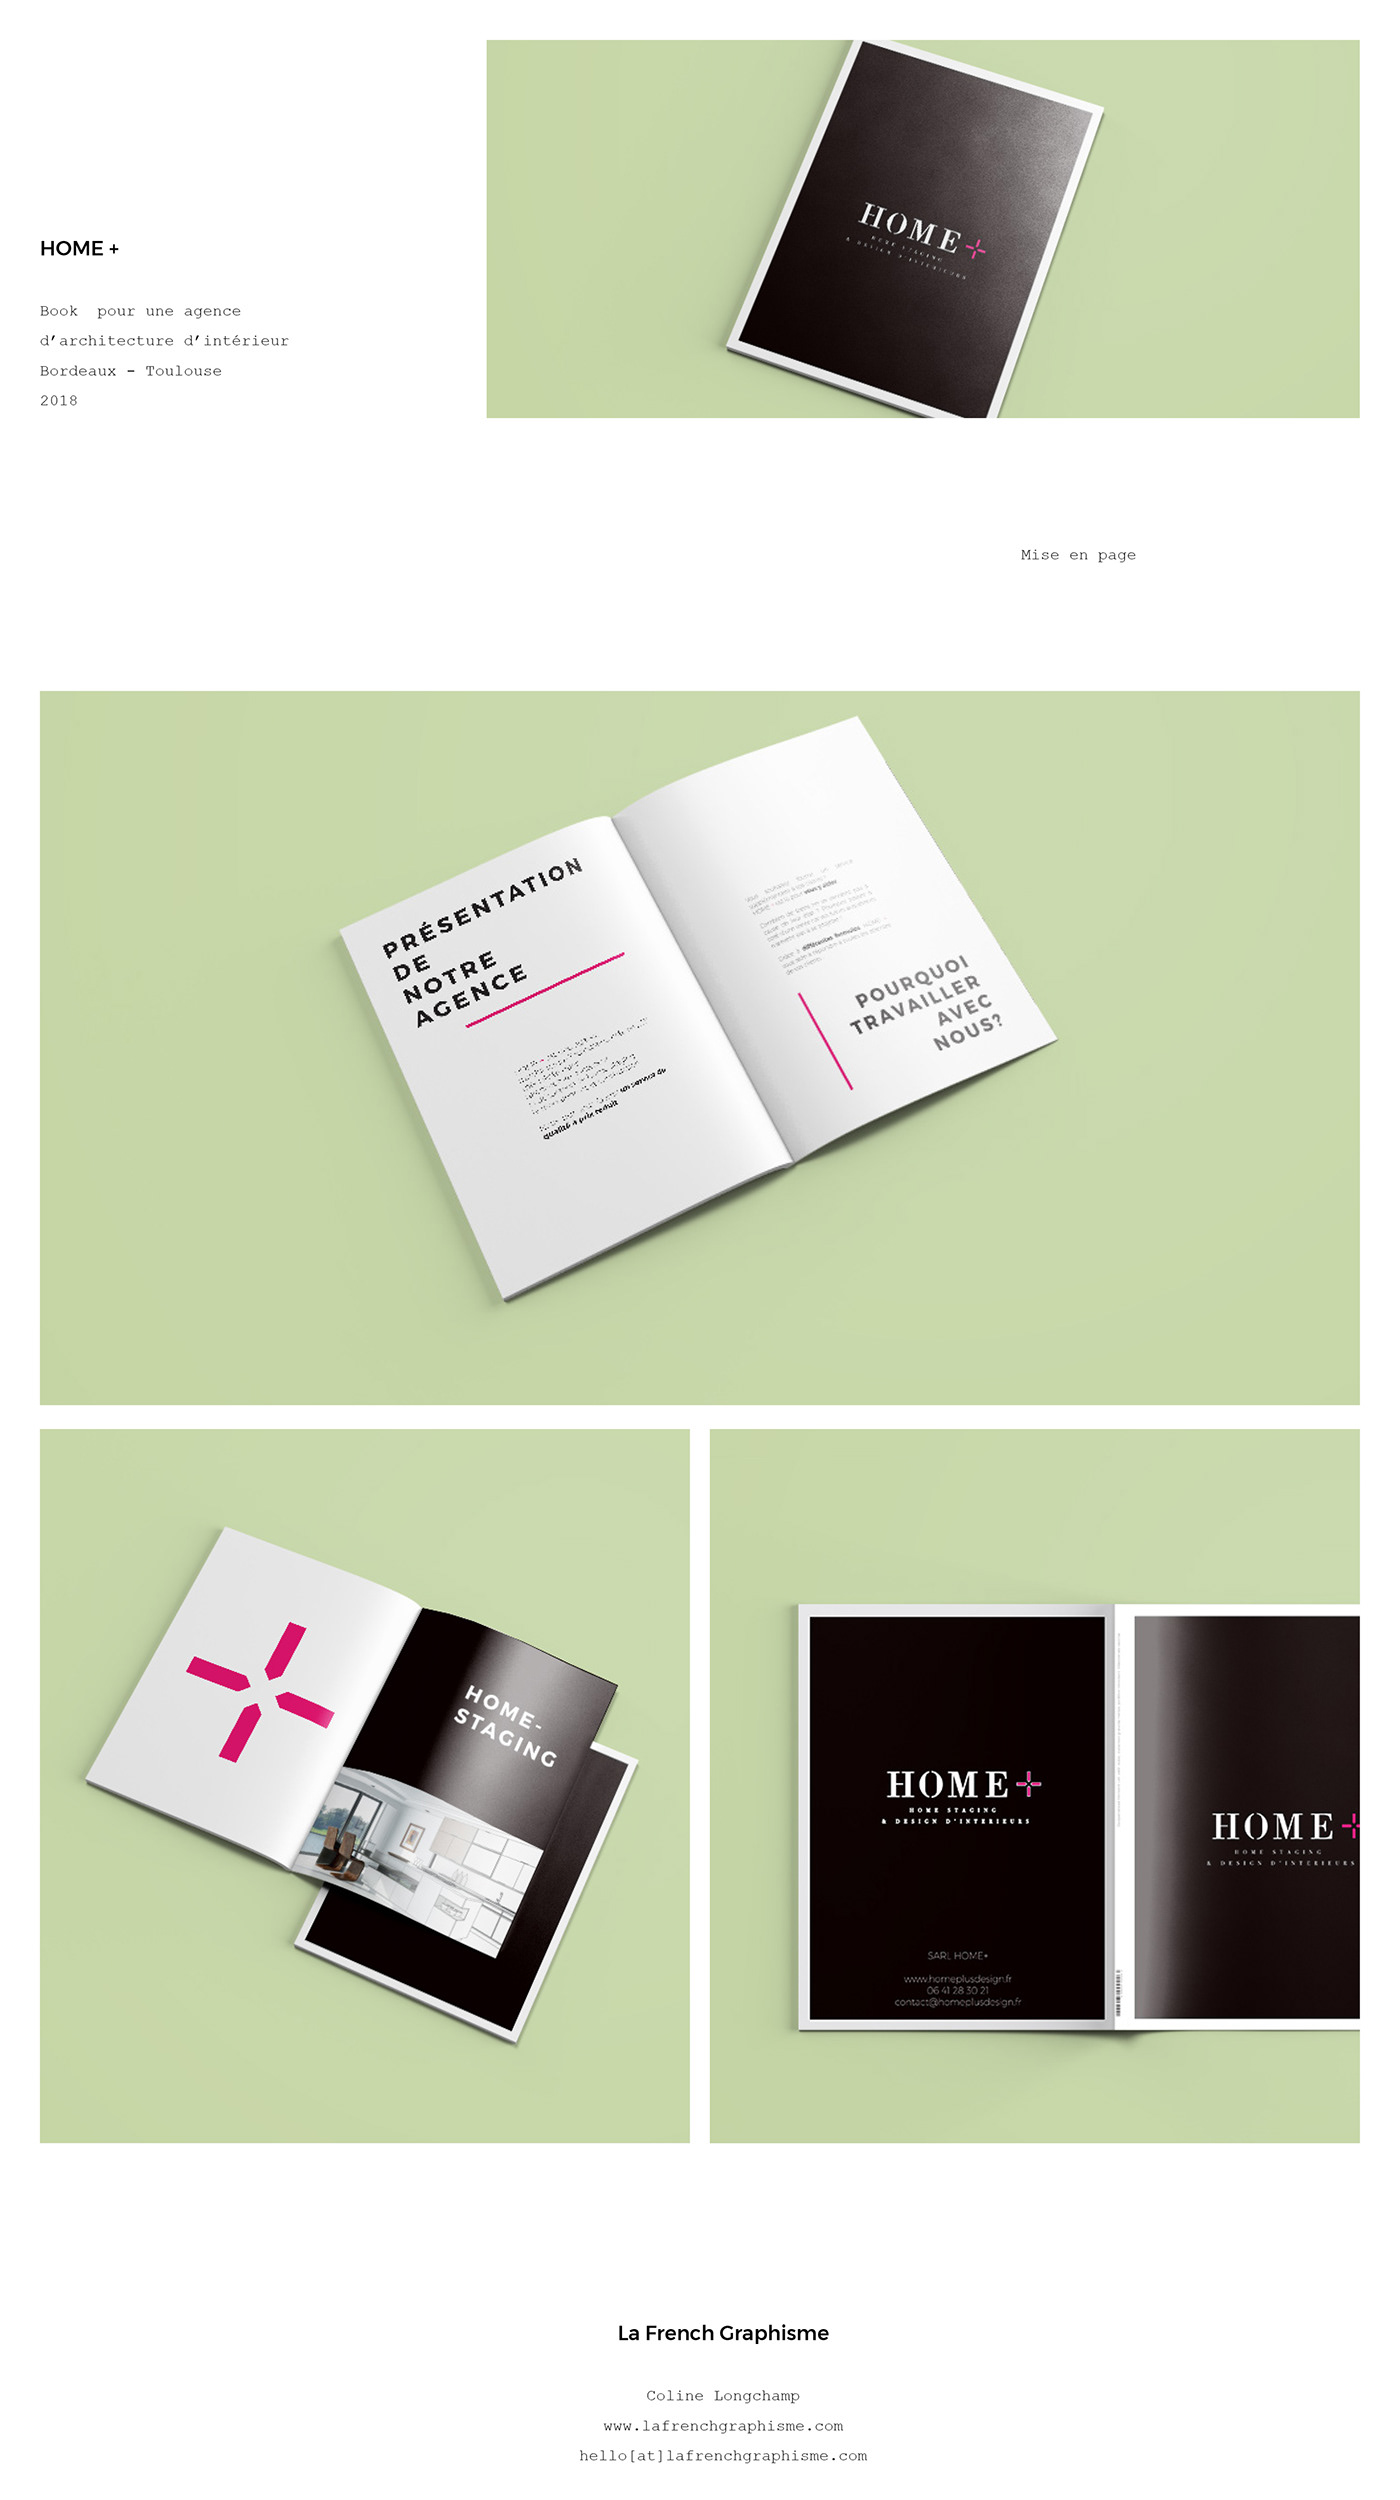 Home Staging Bordeaux home+ - print on behance